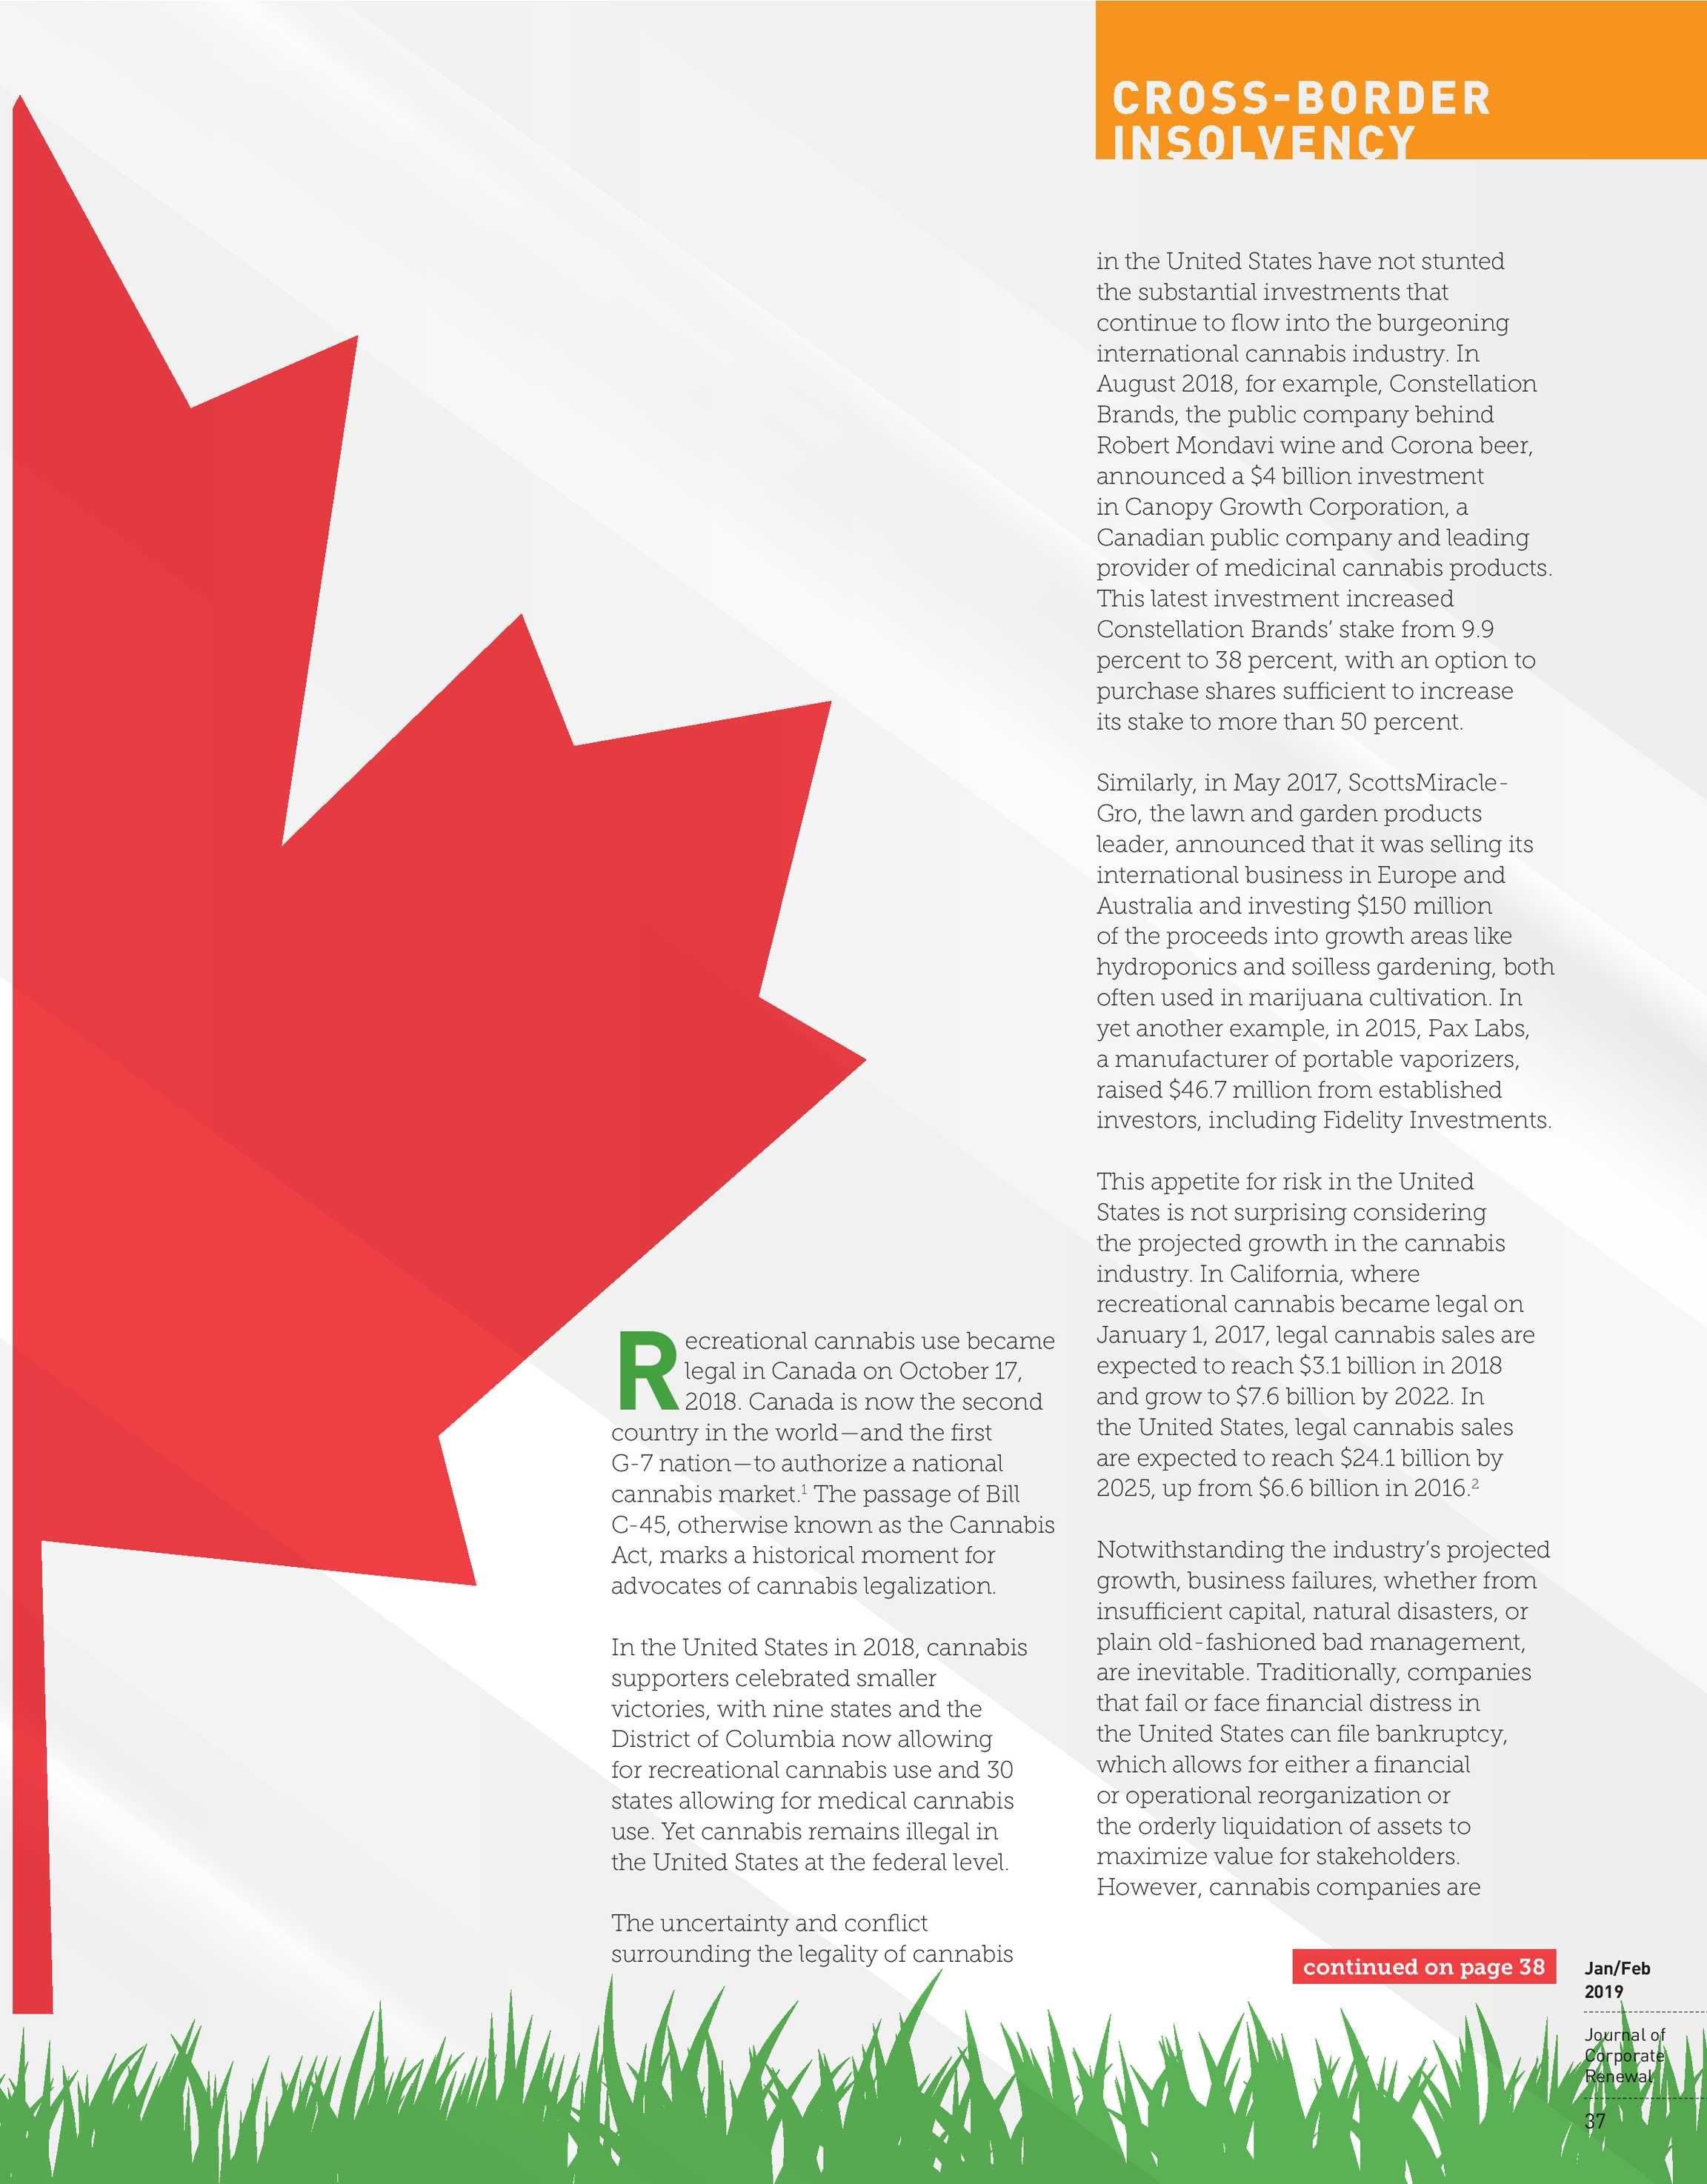 Journal of Corporate Renewal - January/February 2019 - page 36